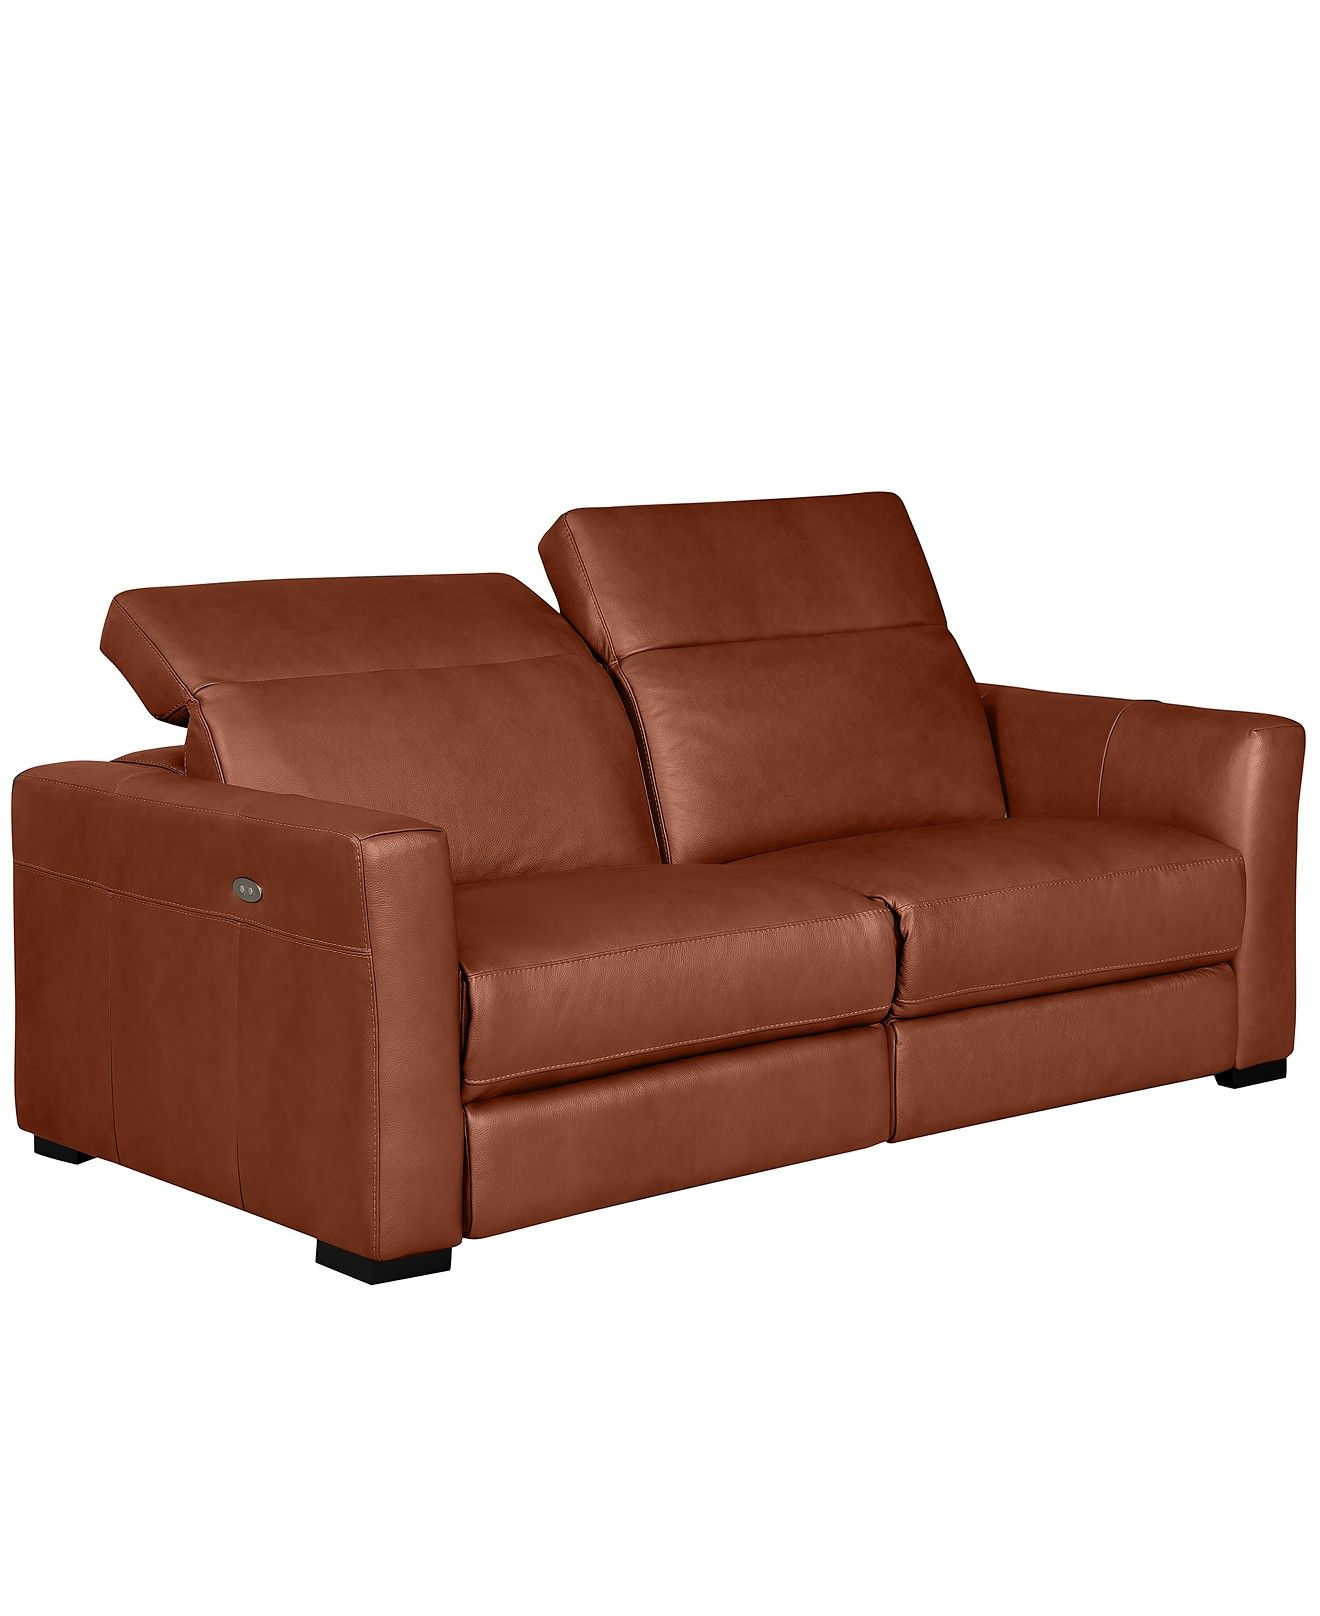 Macys Furniture Las Vegas: Nicolo Sofa With 2 Power Recliners